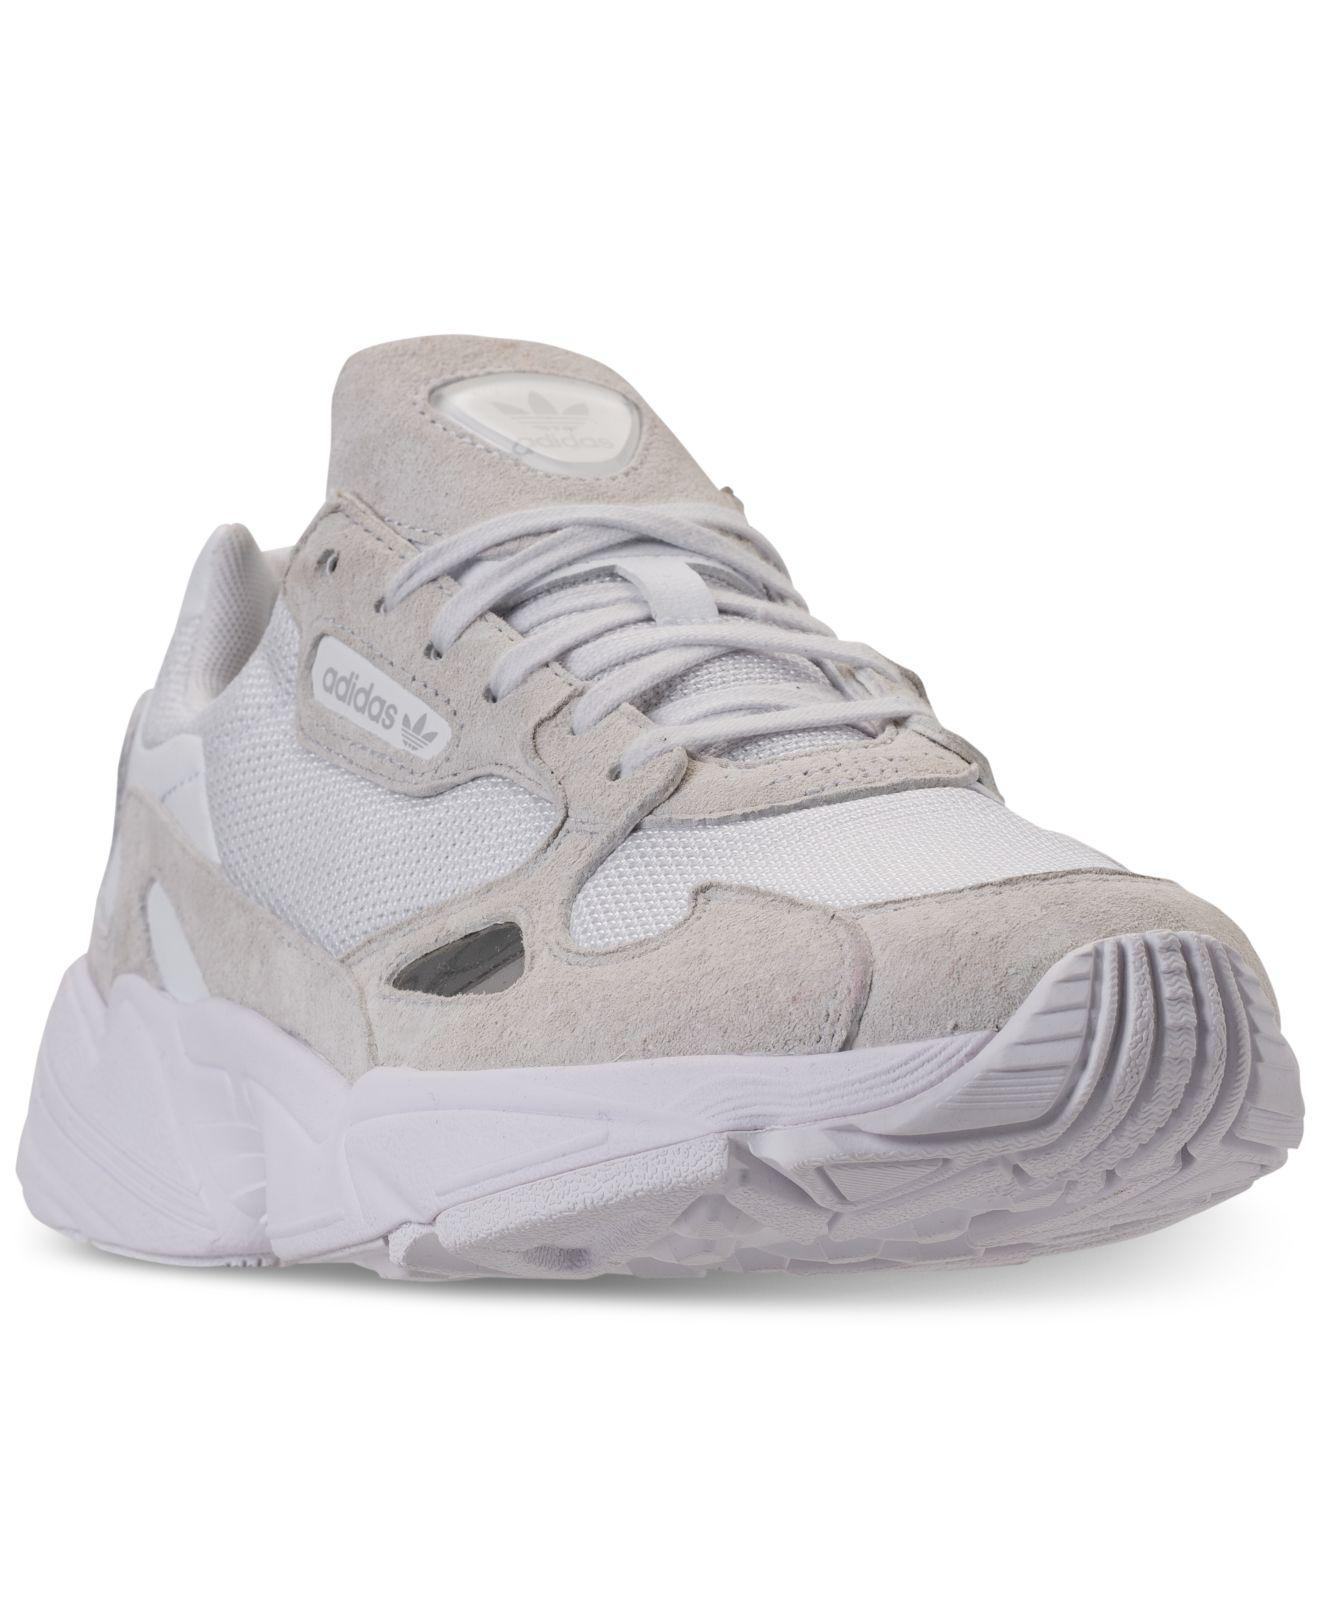 72dfc4f51c581 Adidas - White Falcon Athletic Sneakers From Finish Line - Lyst. View  fullscreen